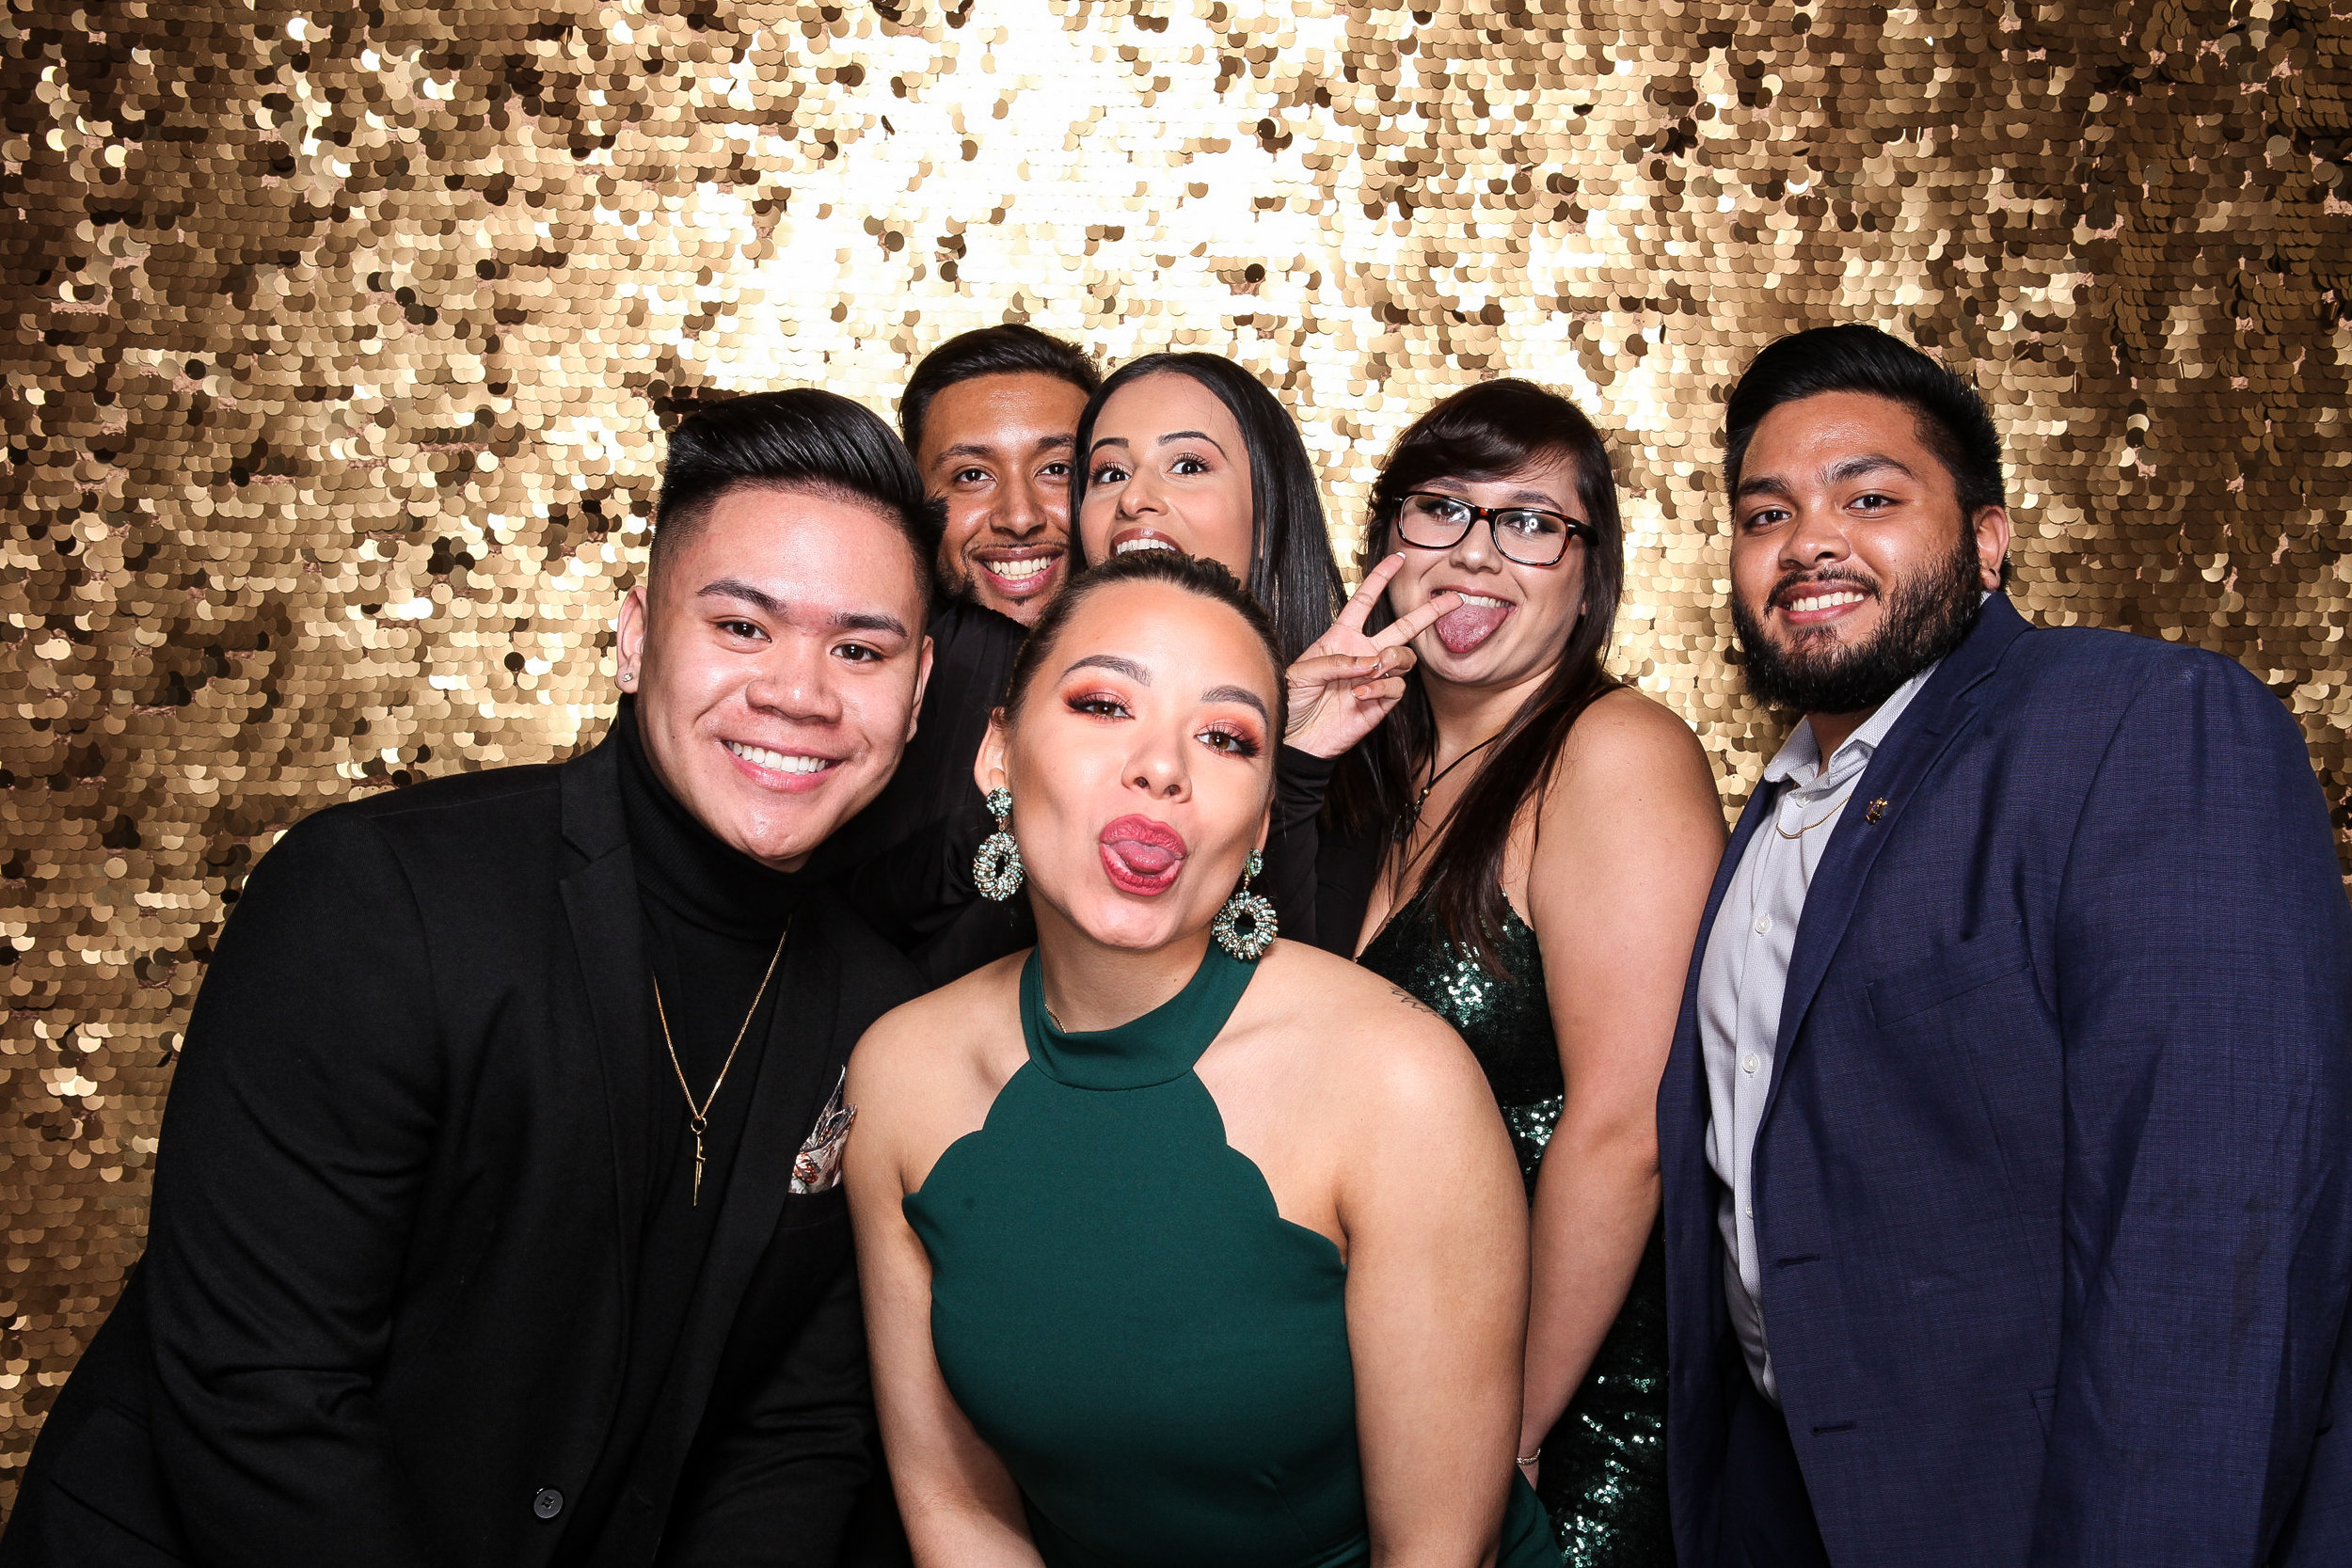 20190503_Adelphi_Senior_Formal-151.jpg